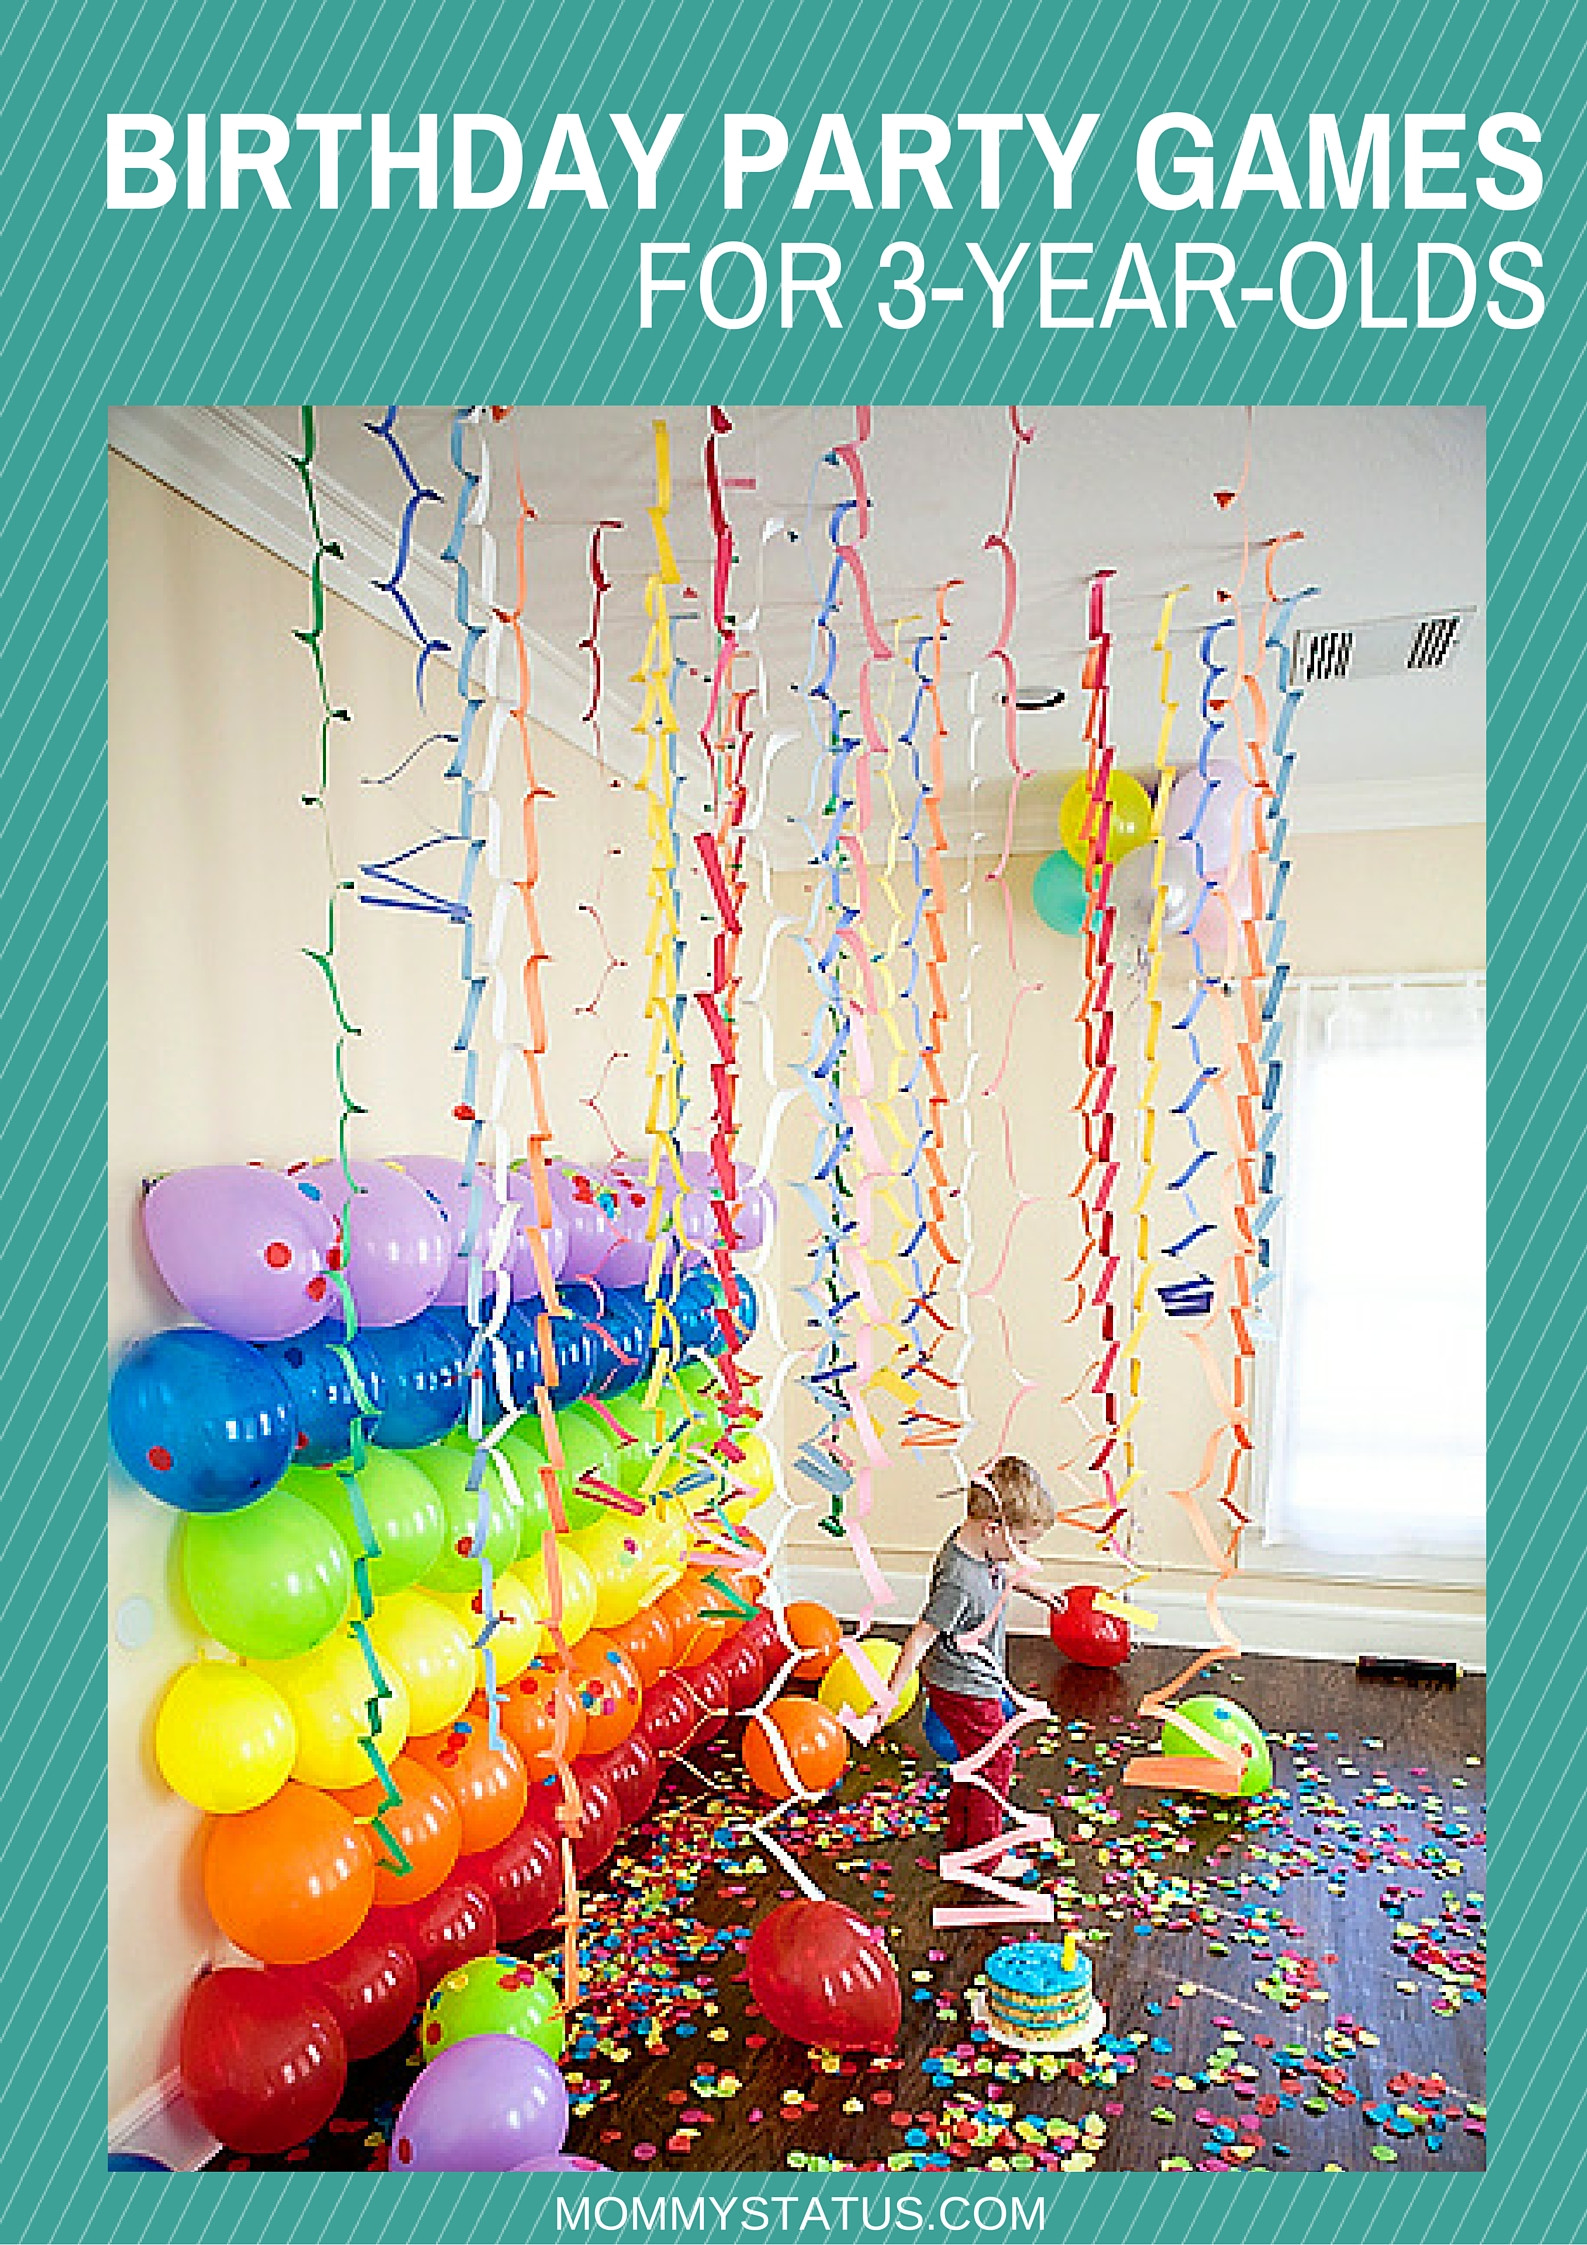 Best ideas about 3 Year Old Birthday Party Ideas . Save or Pin BIRTHDAY PARTY GAMES FOR 3 YEAR OLDS Mommy Status Now.